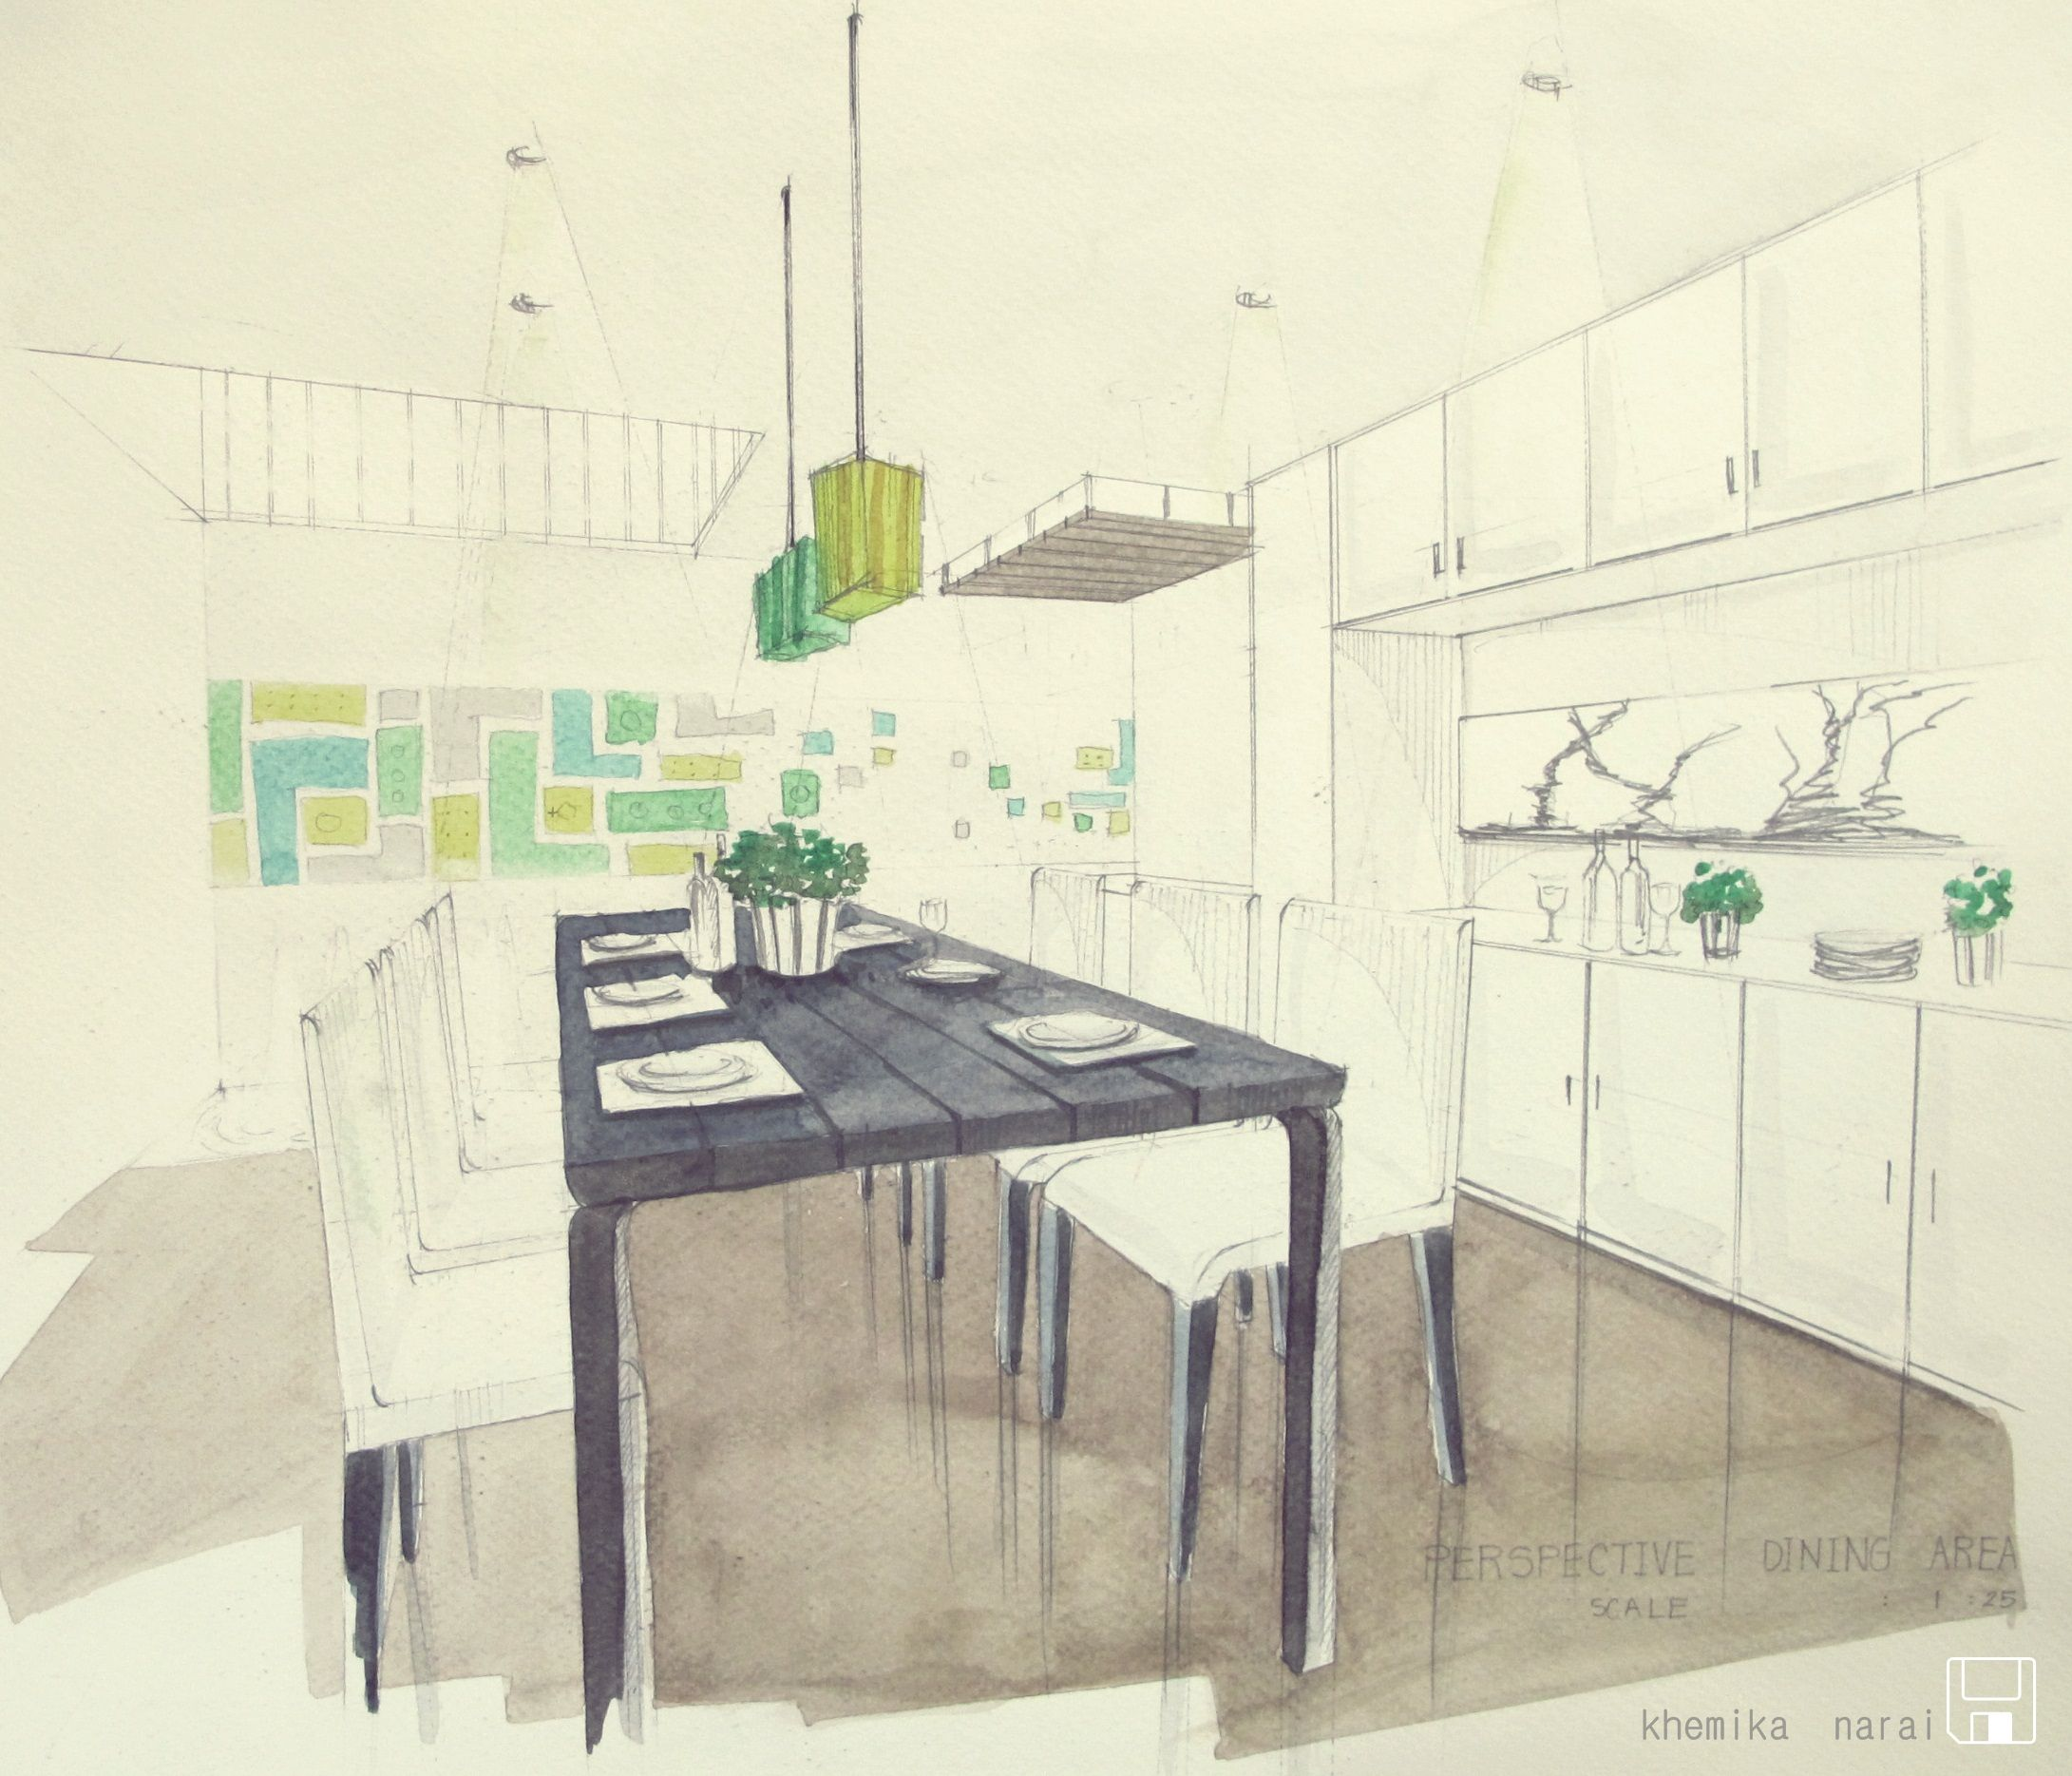 Dining room perspective drawing dining  concept  lego  sketch design  pinterest  sketch design